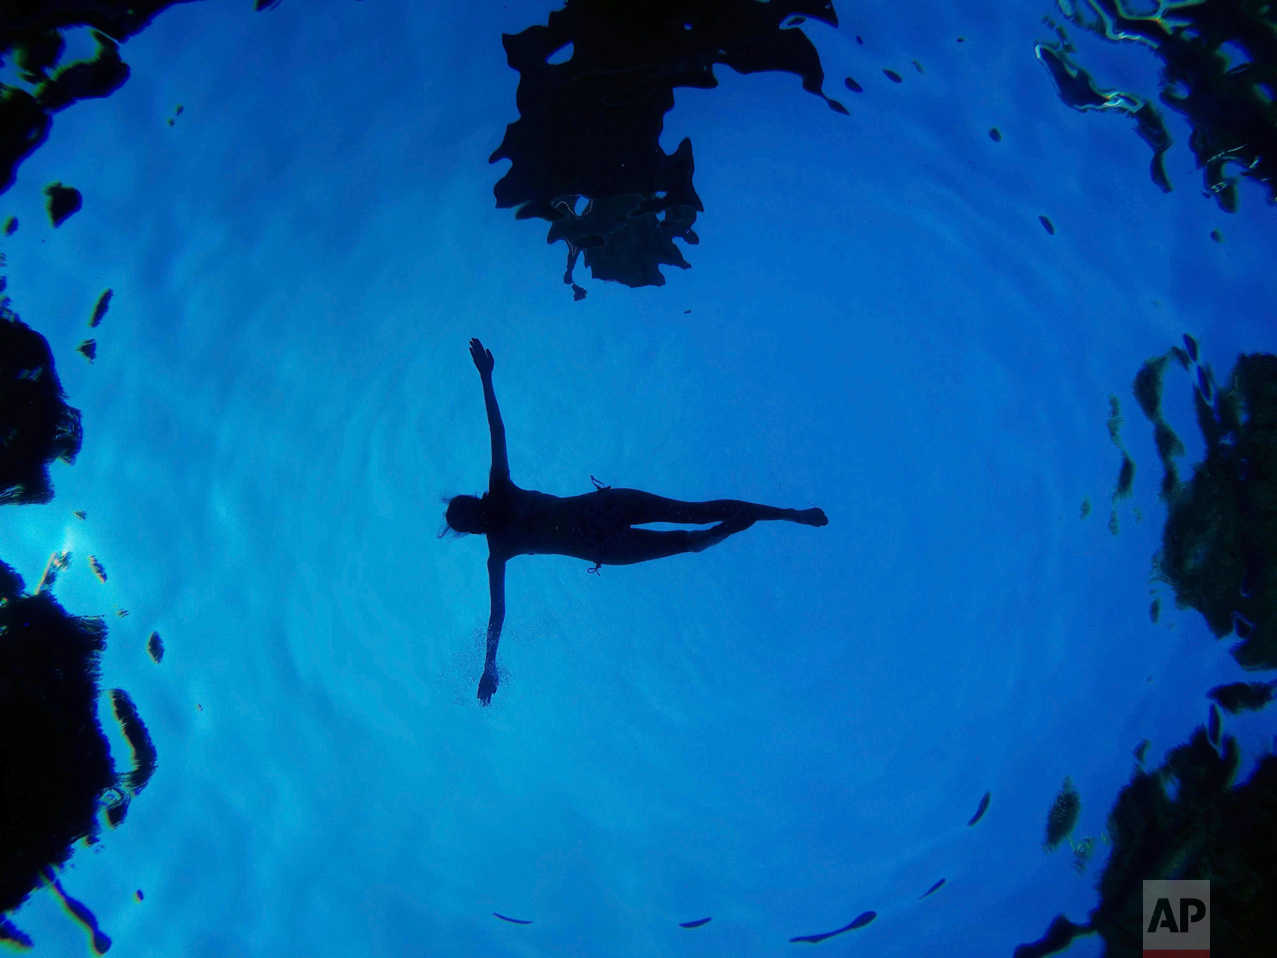 A Sunday, Aug. 28, 2016 photo taken underwater of a woman floating in a swimming pool during a summer day in Madrid, Spain. (AP Photo/Daniel Ochoa de Olza)